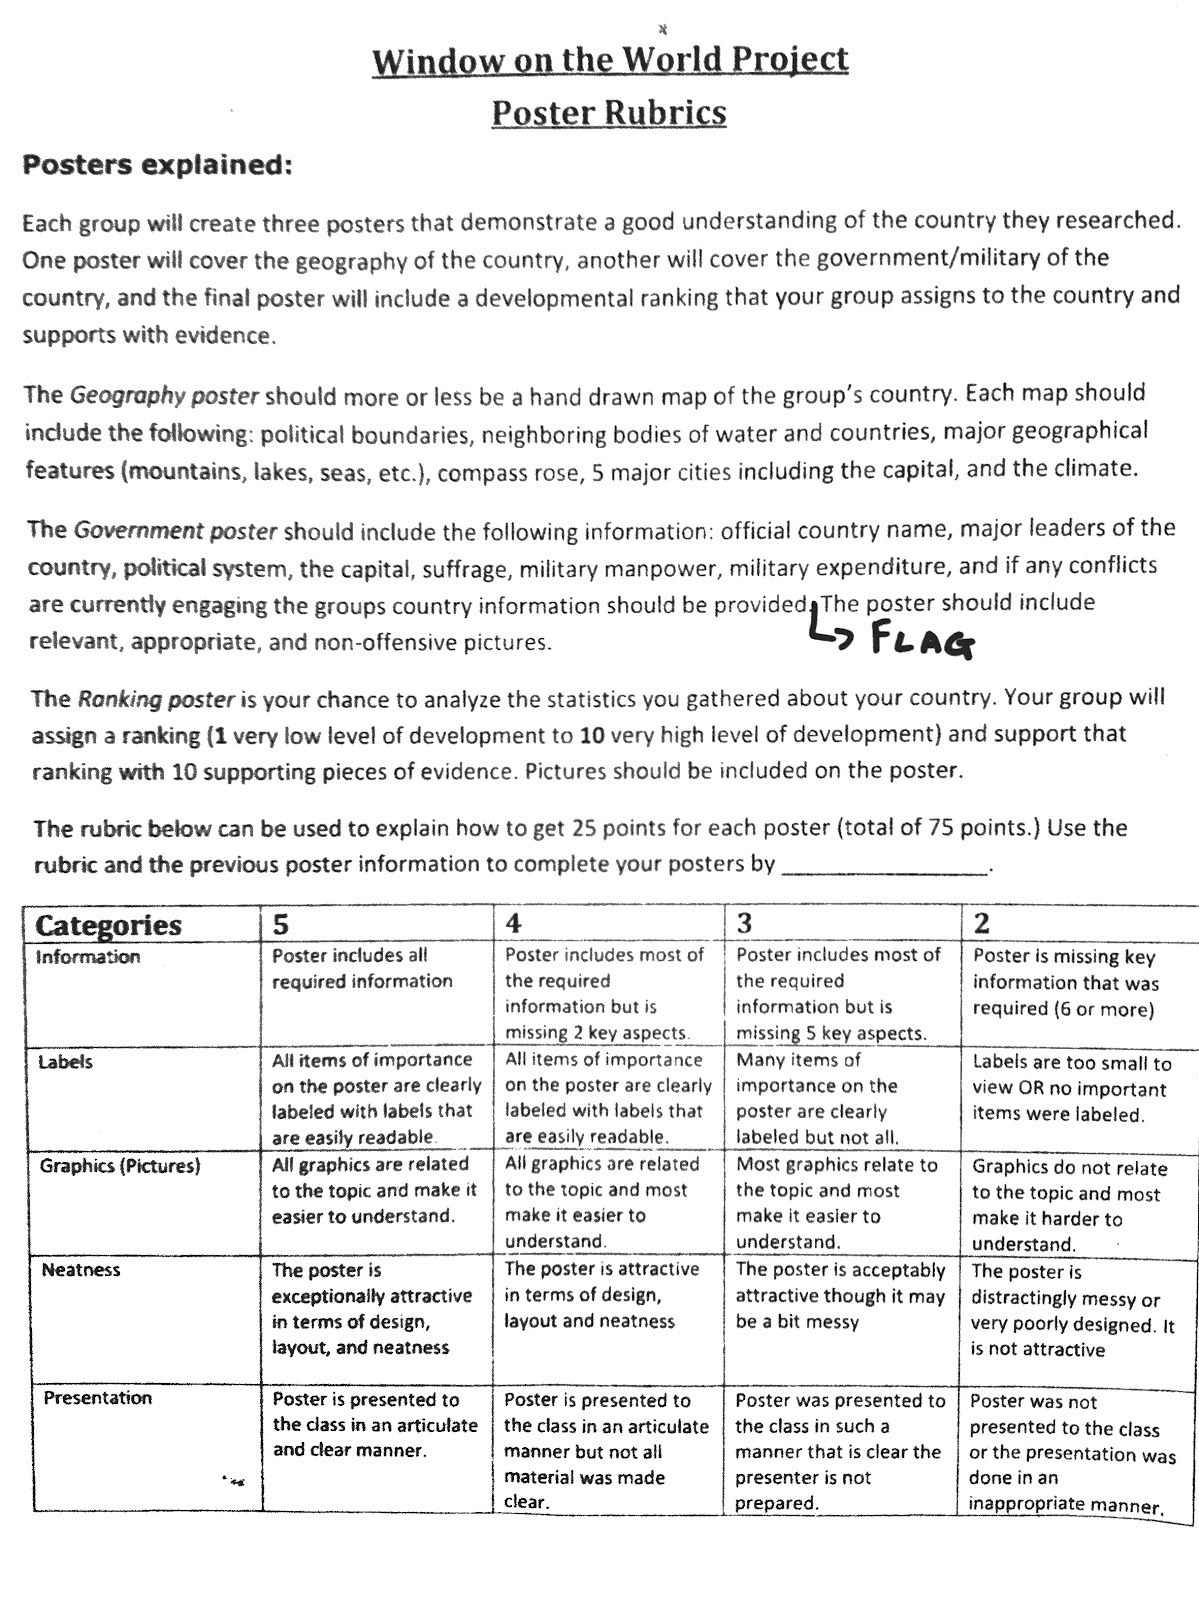 scientist research paper rubric Research paper rubric (word doc) science webquest rubric performance evaluating a web essay scientific report rubric easy to modify for any kind of high school research report physics project rubric a good example of a performance rubric tuned a specific project.